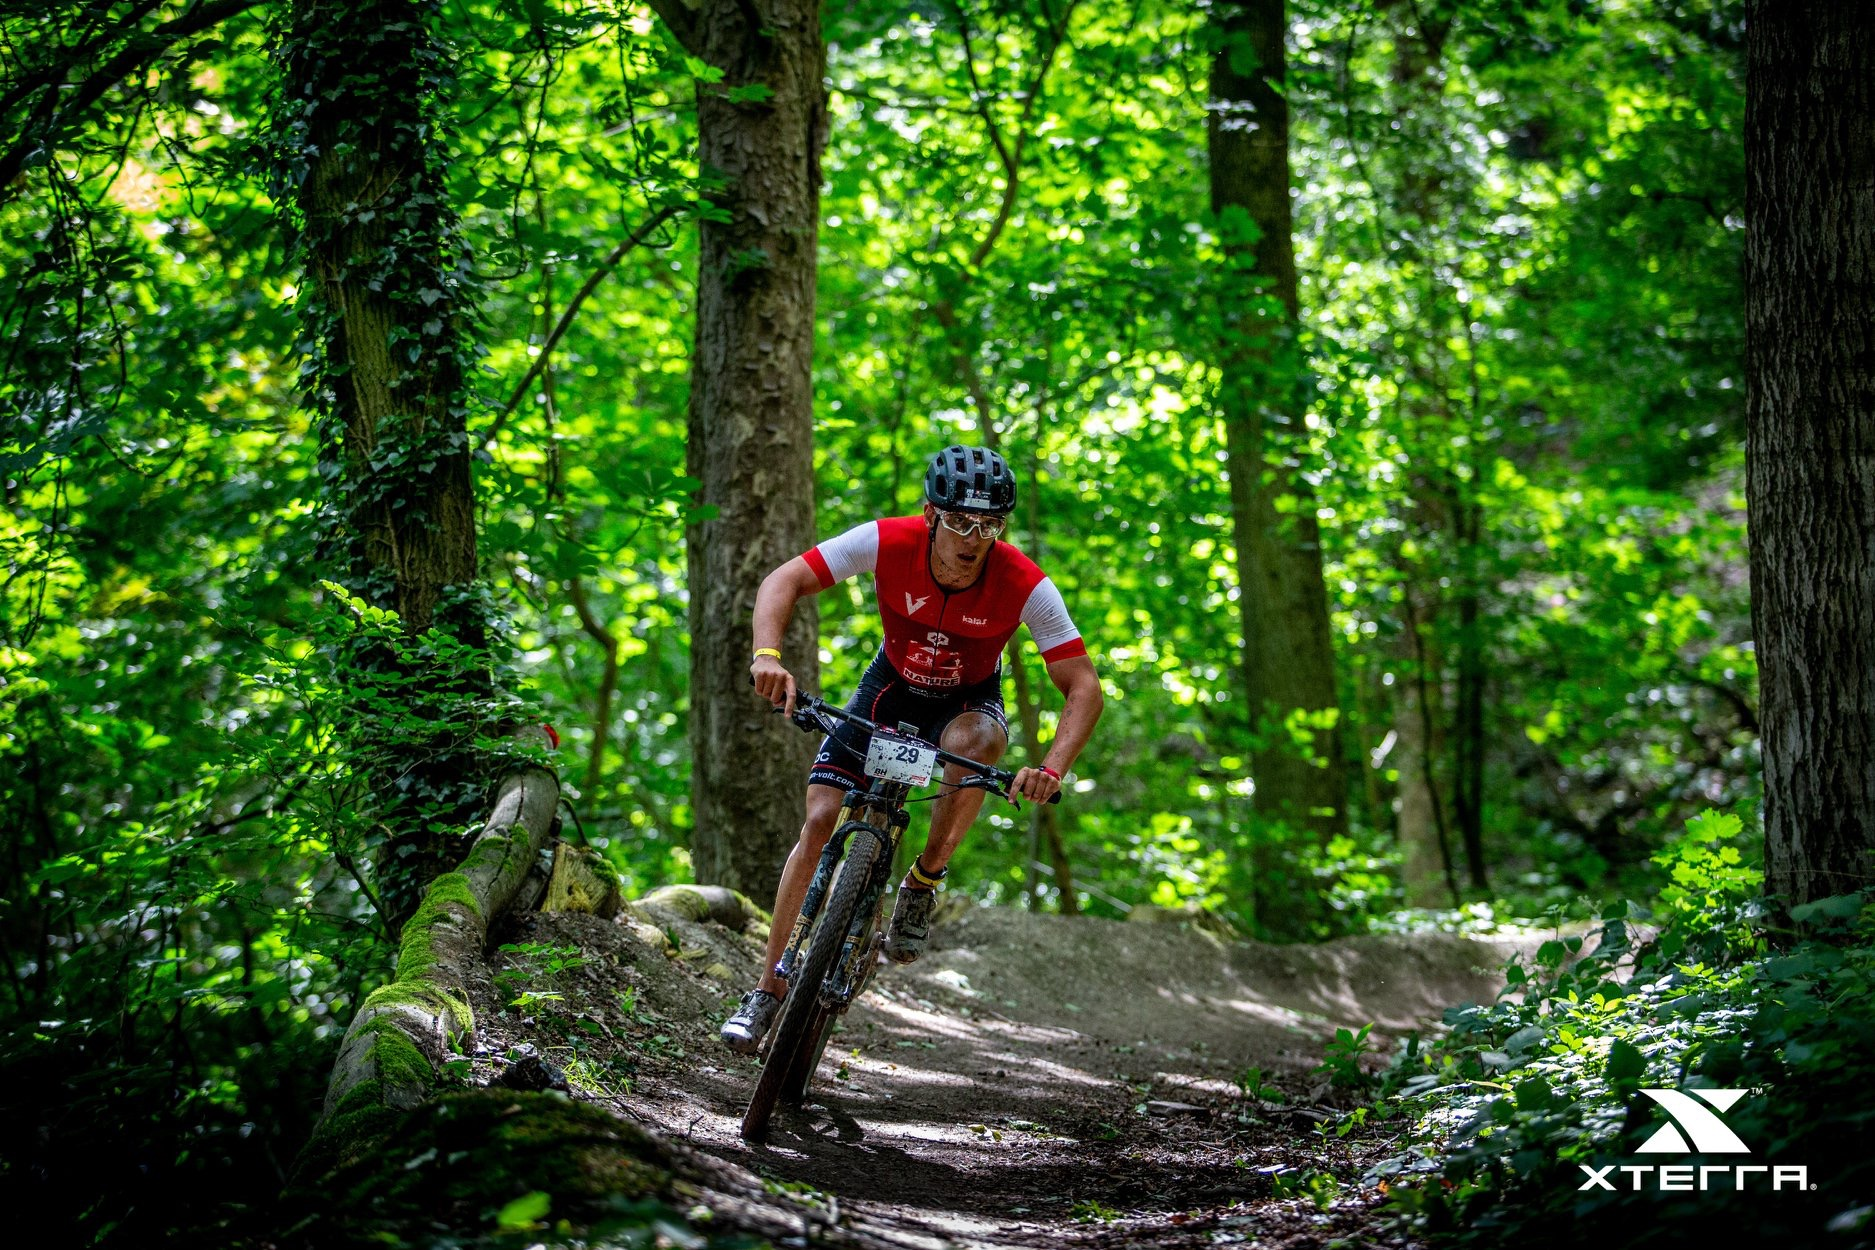 Xterra Greece - Corentin Duclos 8th Scratch